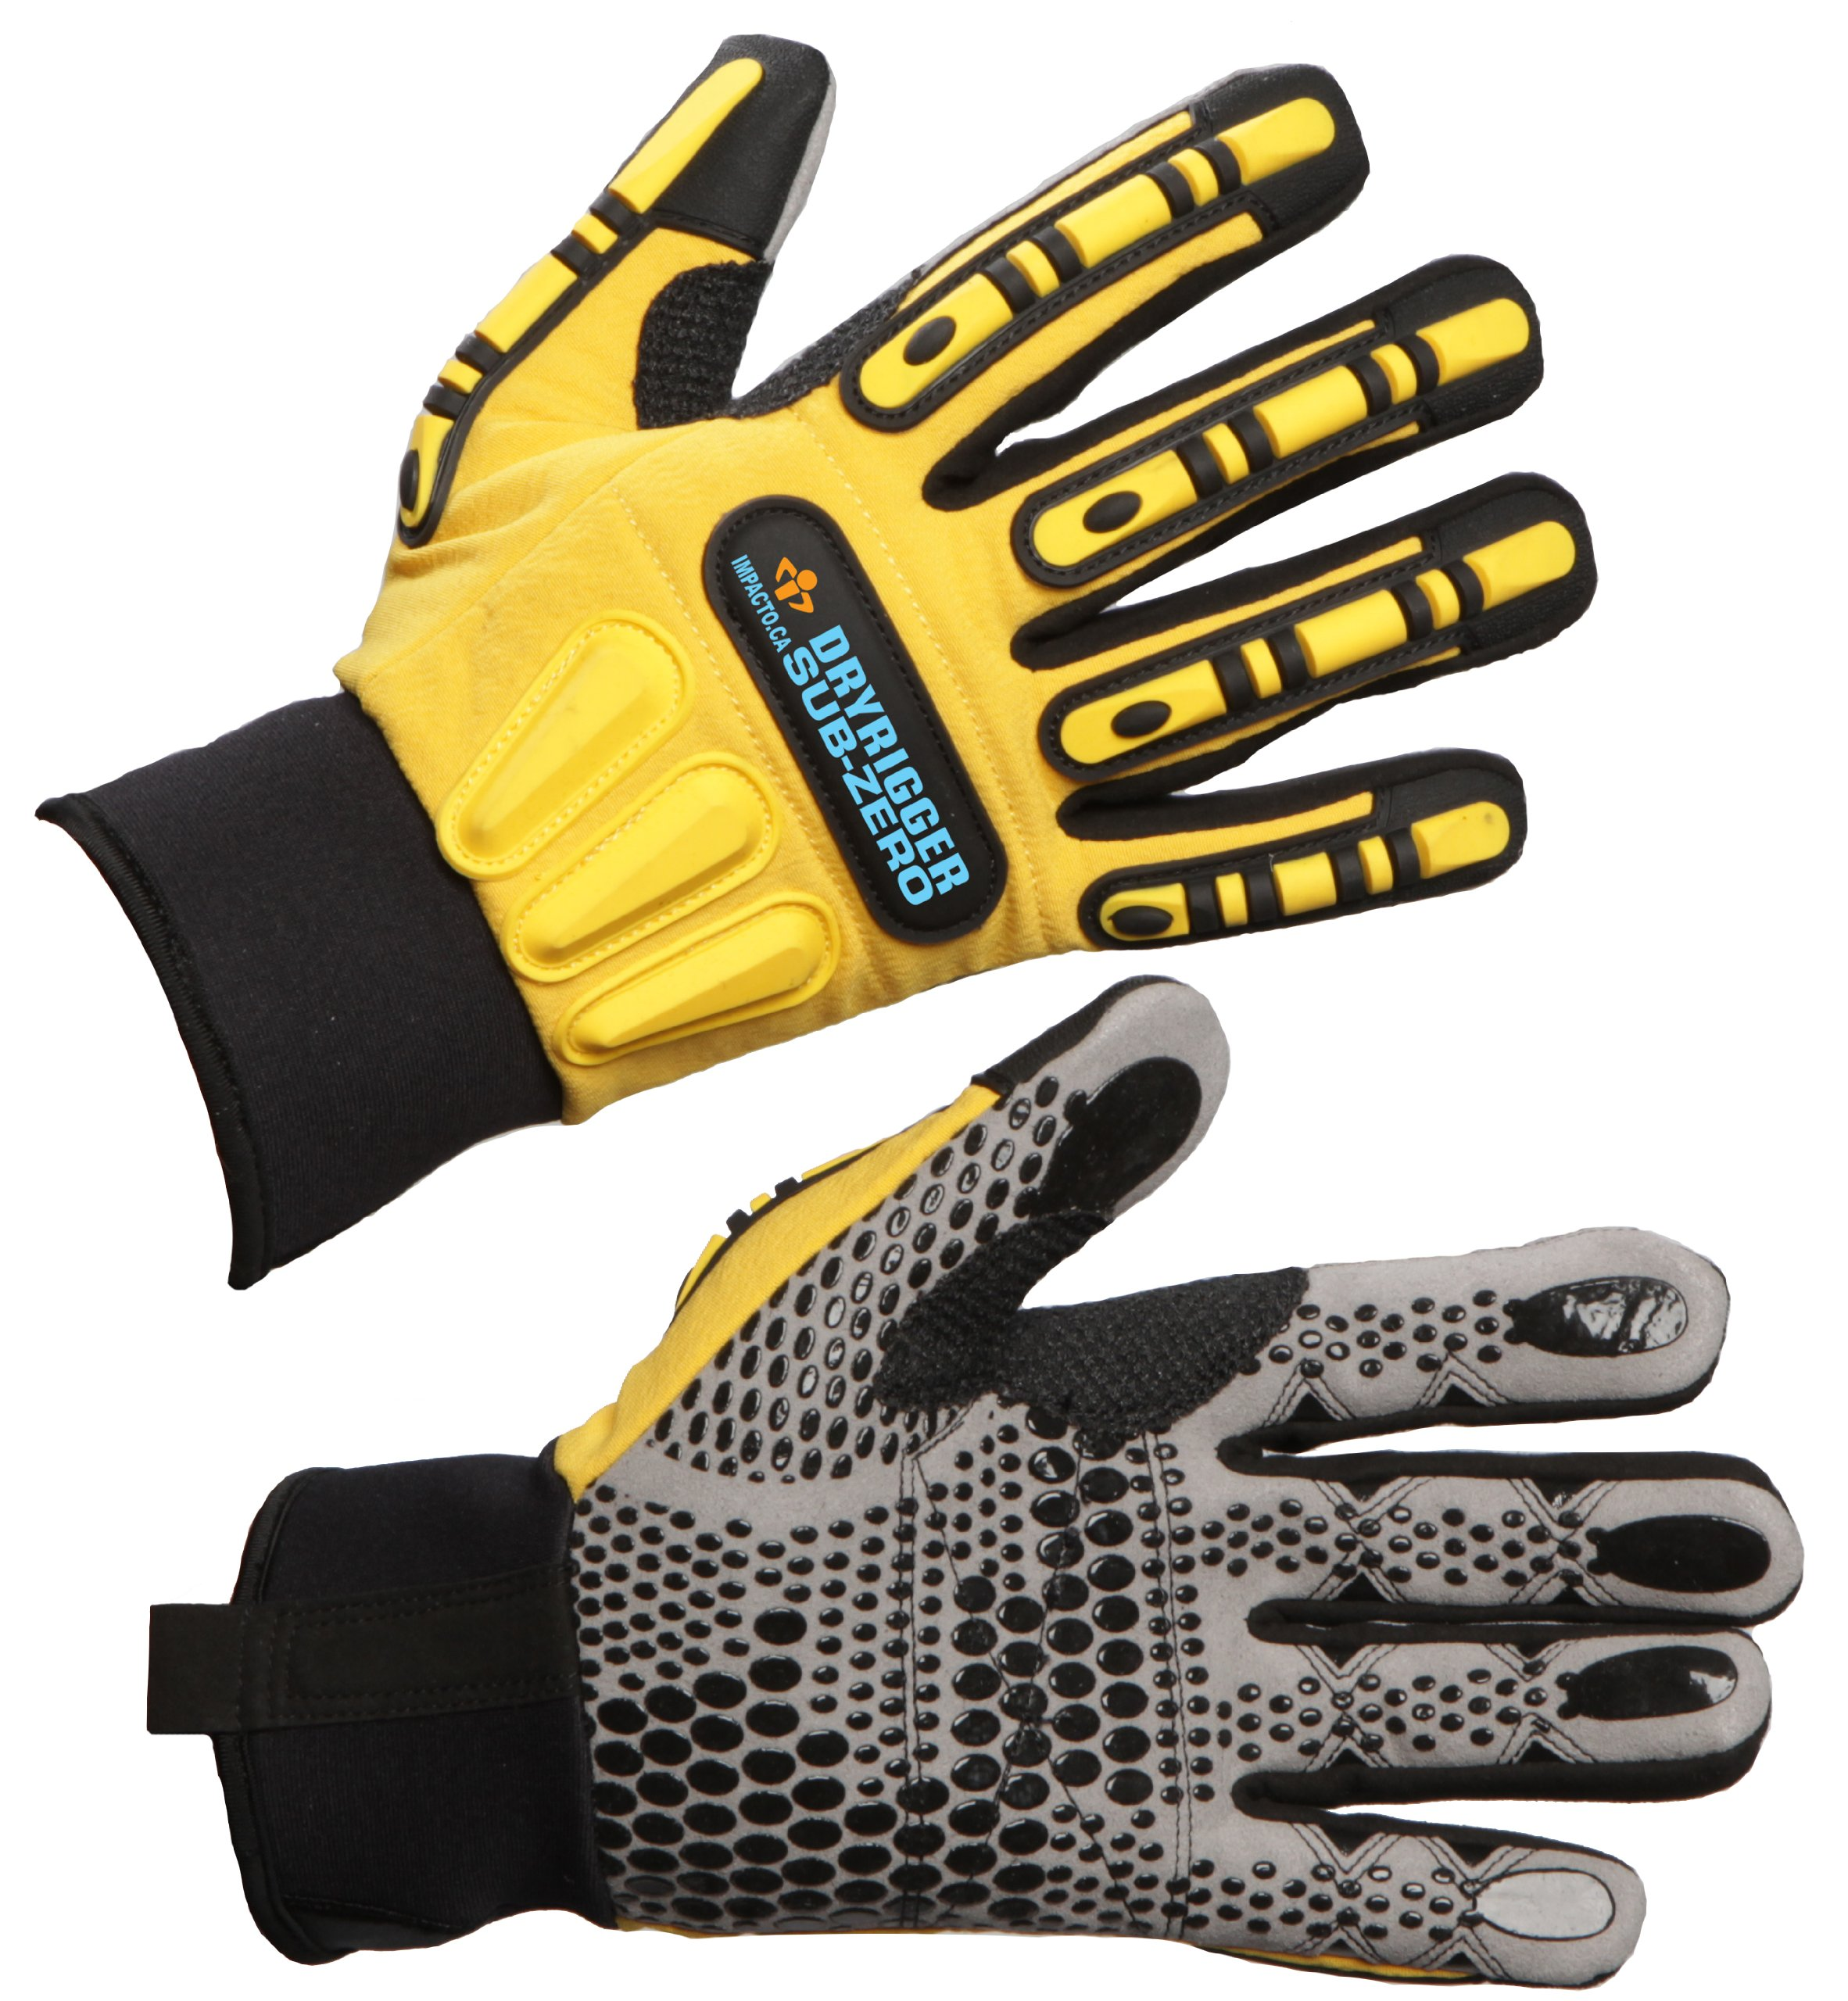 IMPACTO WGWINRIGG XLPR DRYRIGGER Subzero Oil/Water Resistant Glove PR by Impacto Protective Products (Image #1)